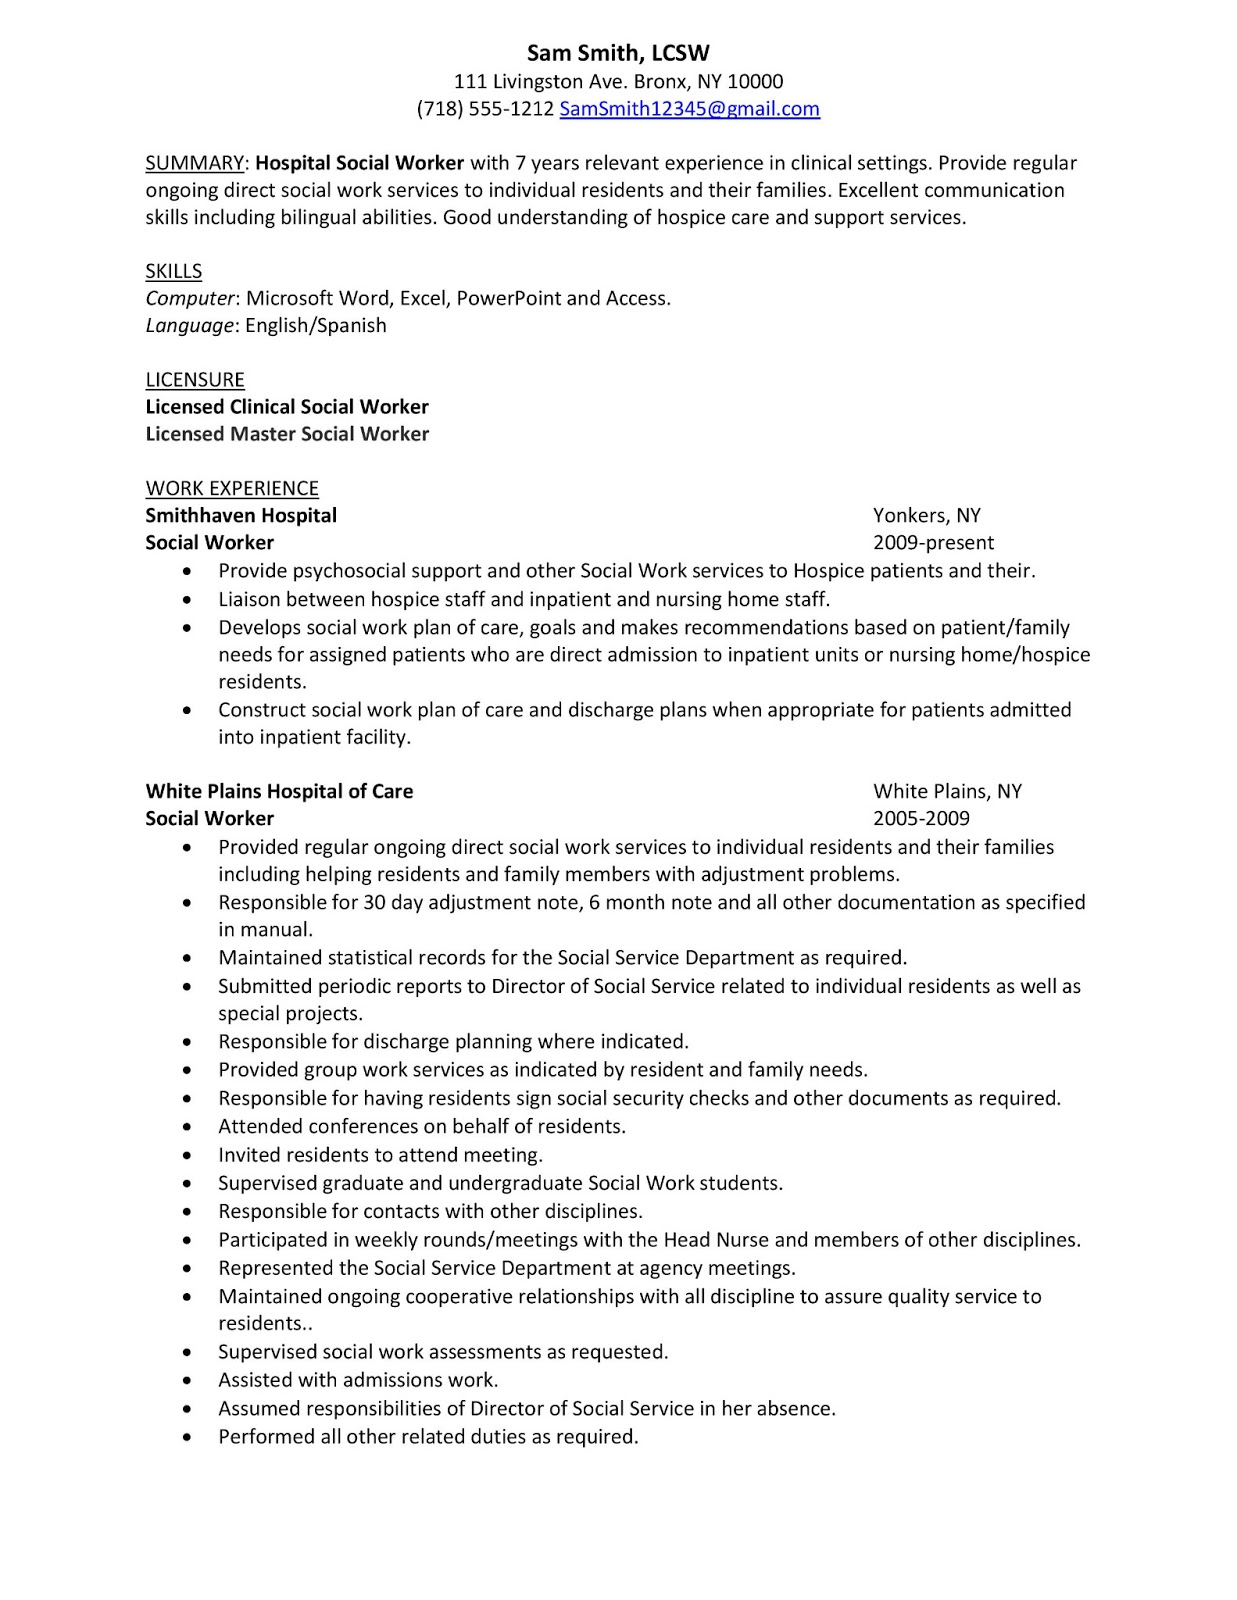 Sample Resume: Hospital Social Worker | Winning Answers to 500 ...